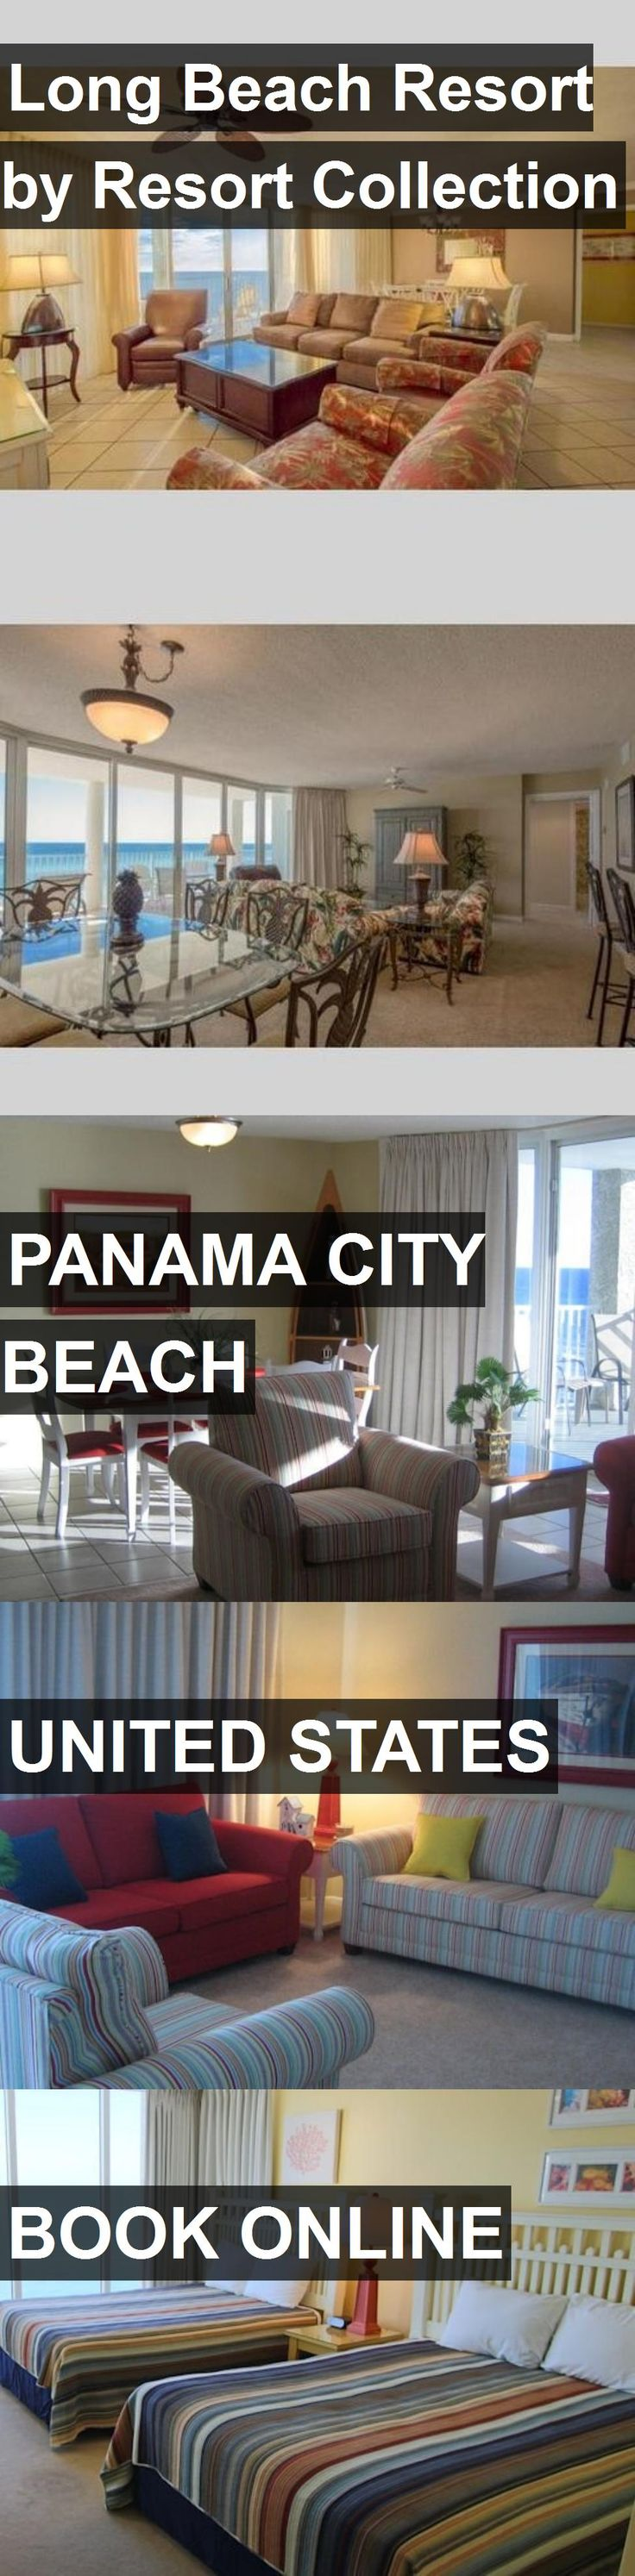 Hotel Long Beach Resort by Resort Collection in Panama City Beach, United States. For more information, photos, reviews and best prices please follow the link. #UnitedStates #PanamaCityBeach #travel #vacation #hotel